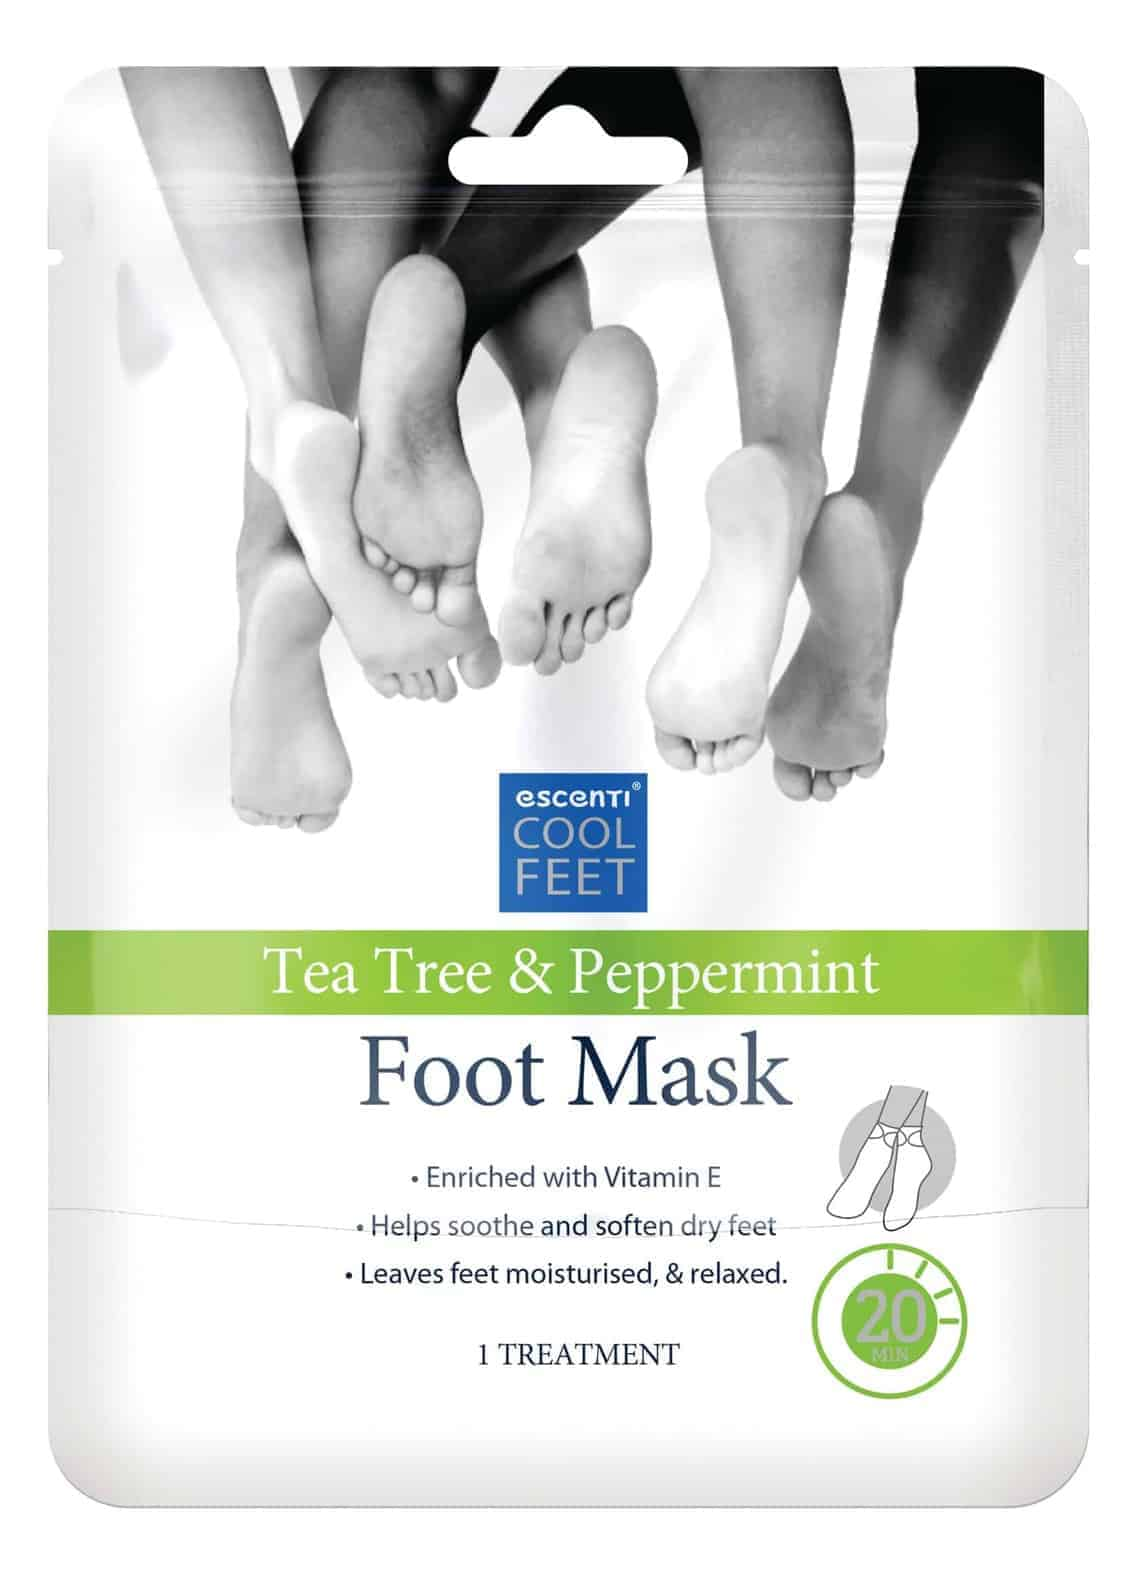 Escenti Escenti Cool Feet Tea Tree & Peppermint Foot Mask